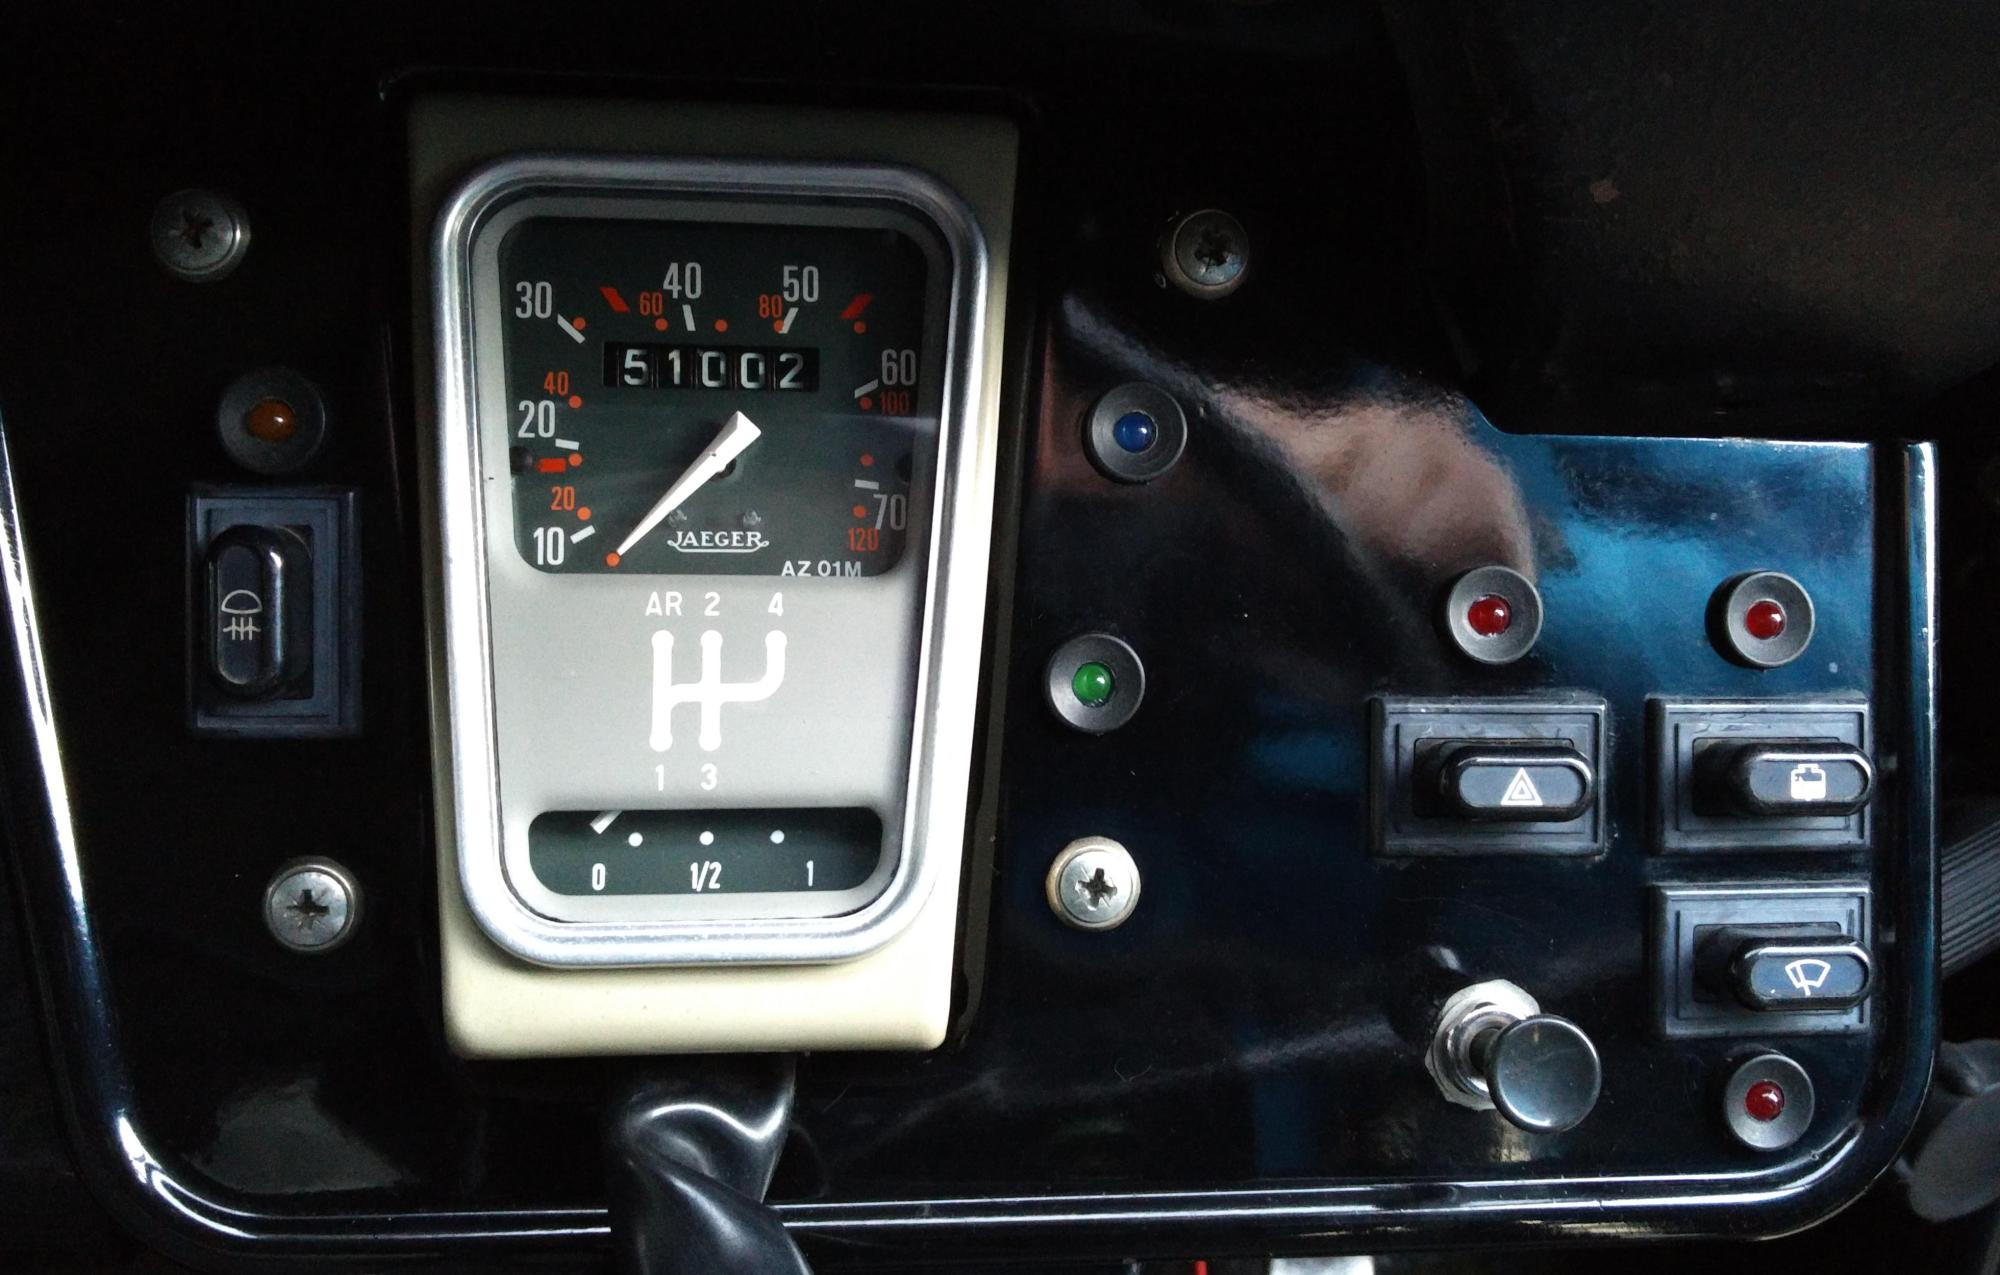 hight resolution of 2cv led dashboard indicator lights in place